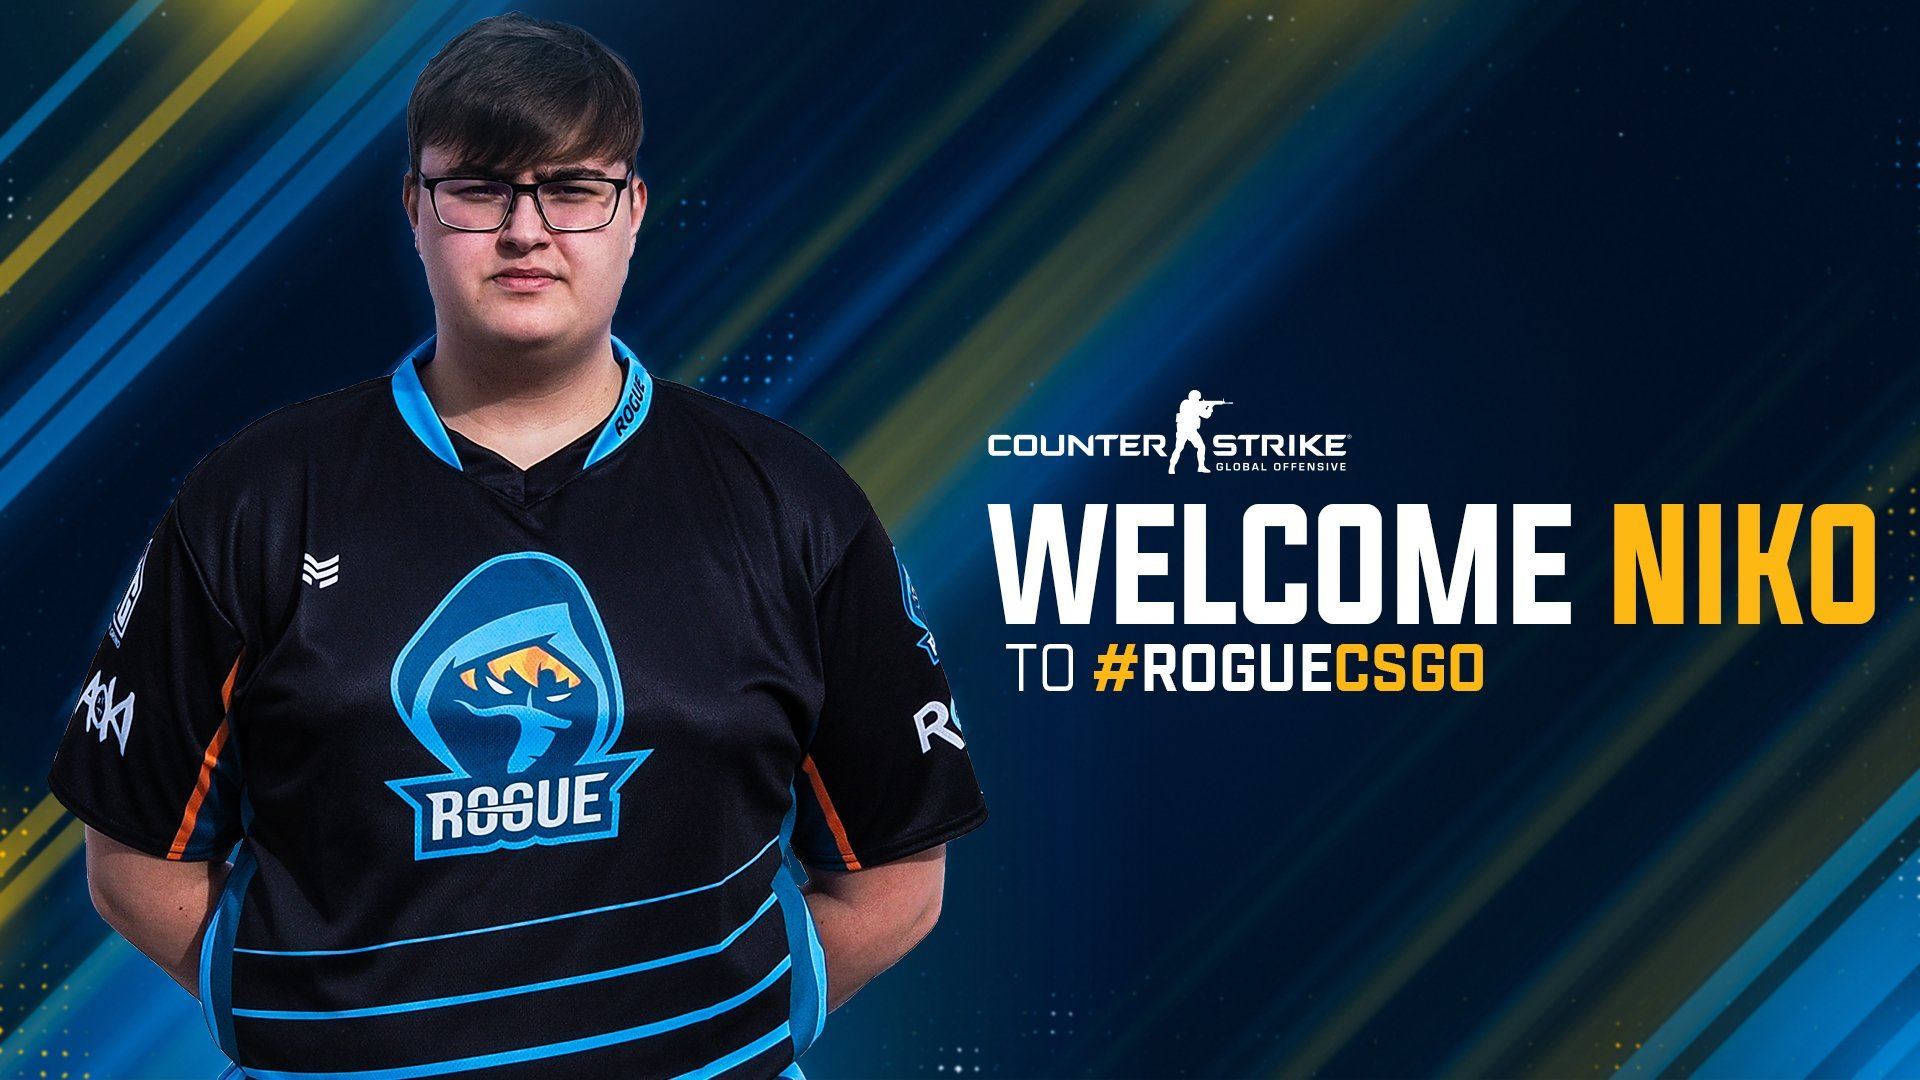 Rogue signs Danish player Niko to their CSGO team   Counter 1920x1080